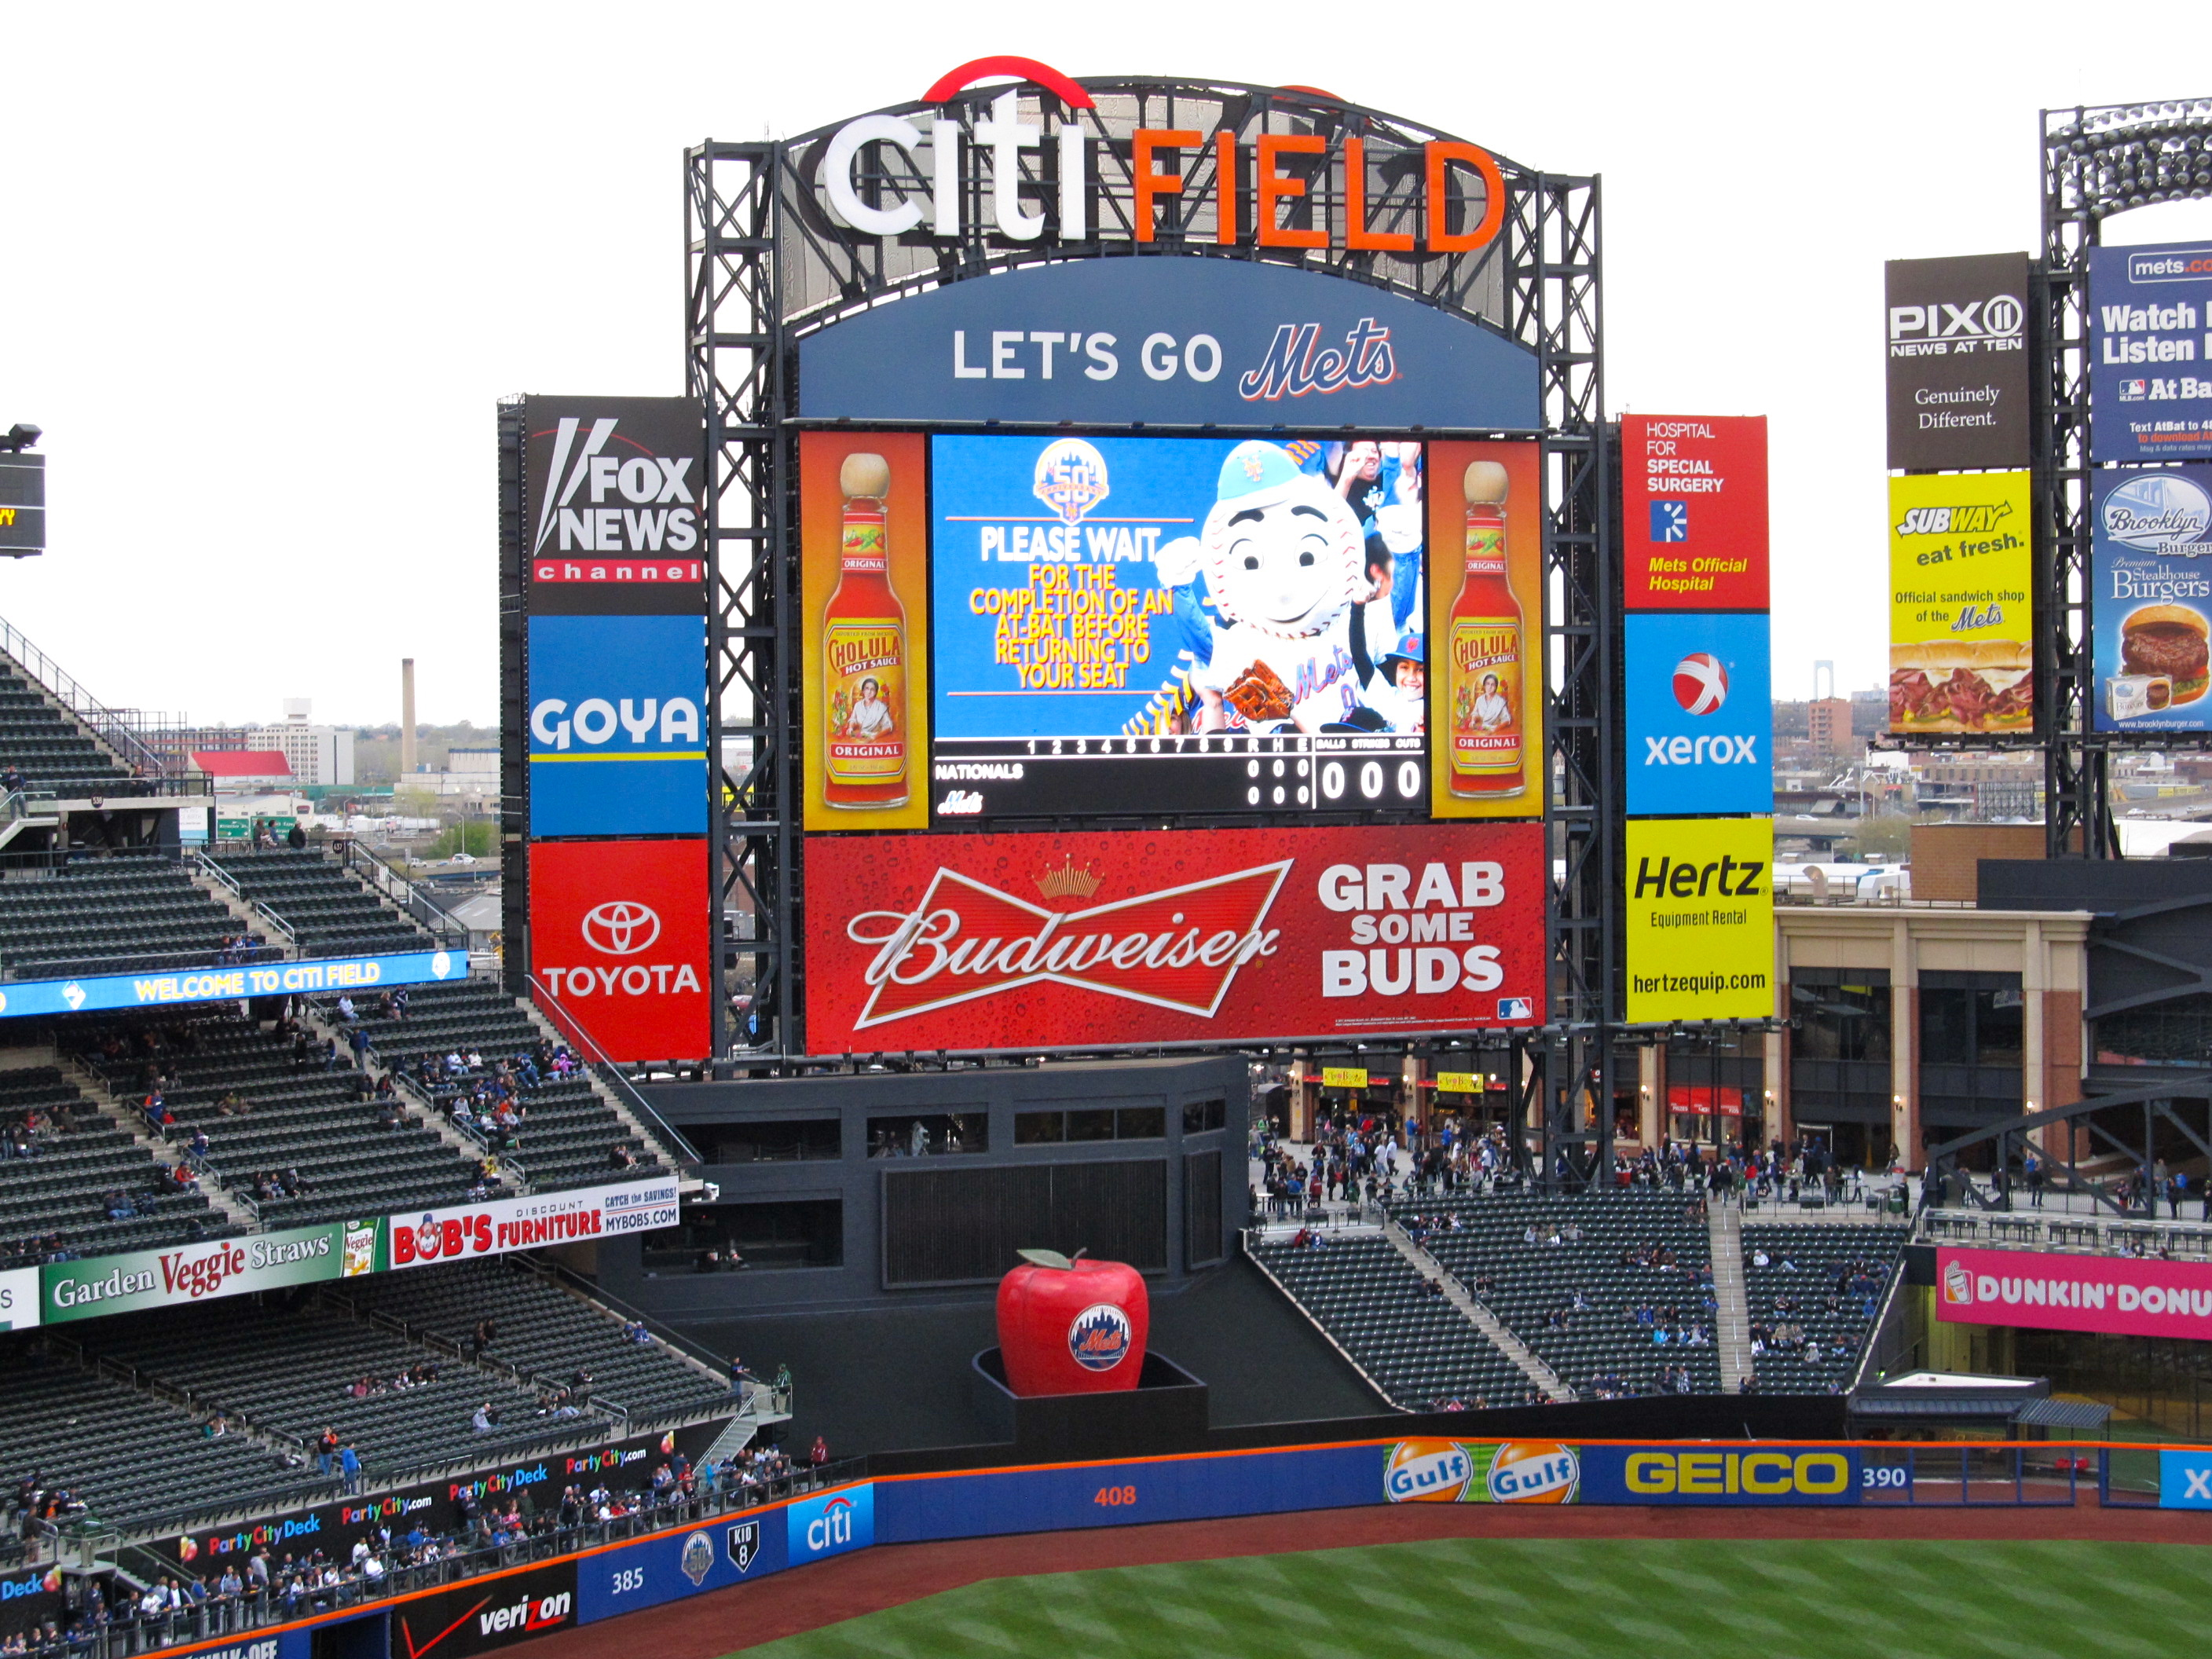 Mets Announce Preliminary 2013 Schedule